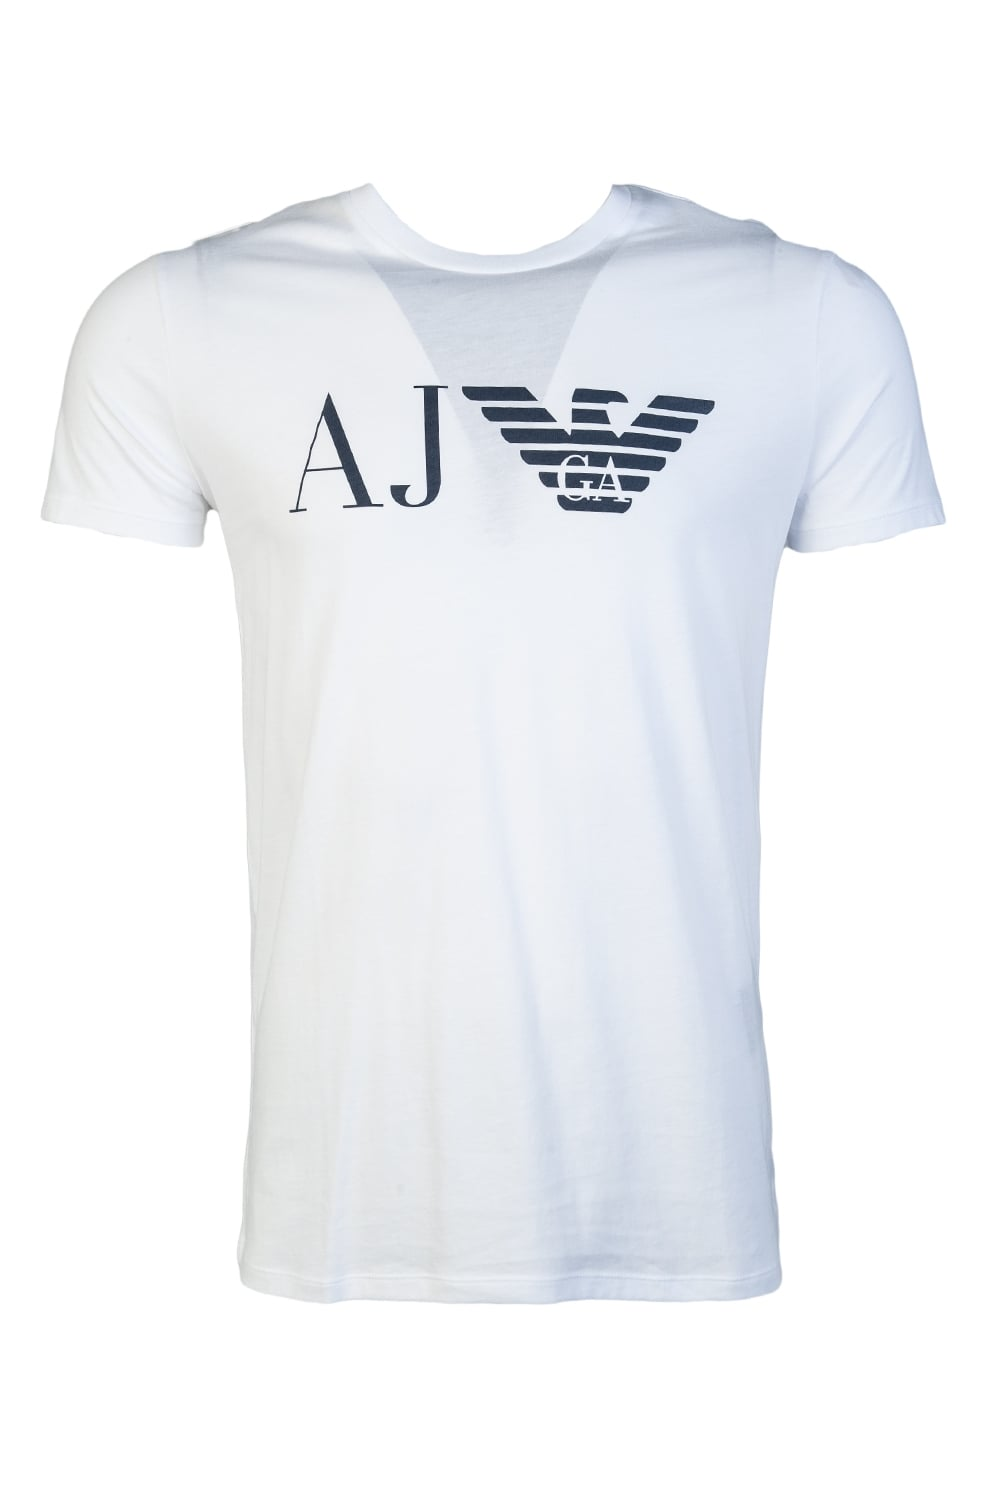 3a307fee Armani Jeans T Shirt 8N6T99 67PFZ - Clothing from Sage Clothing UK